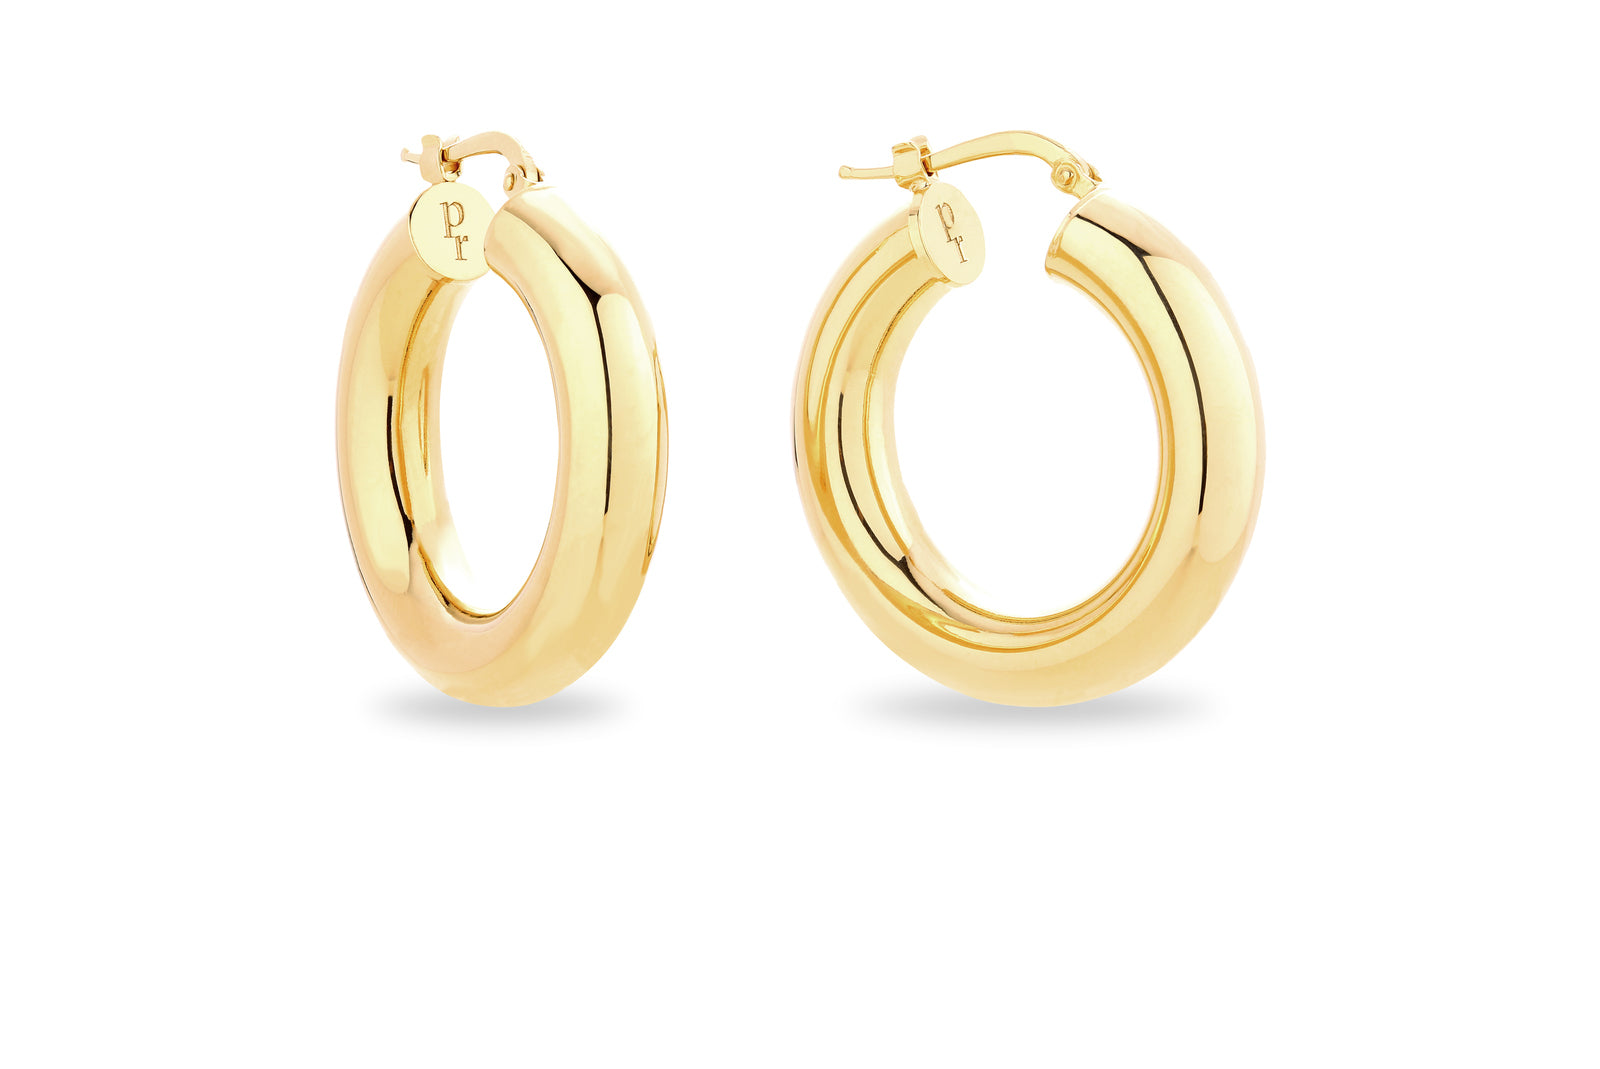 GOLD CHUNKY HOOP EARRINGS • S